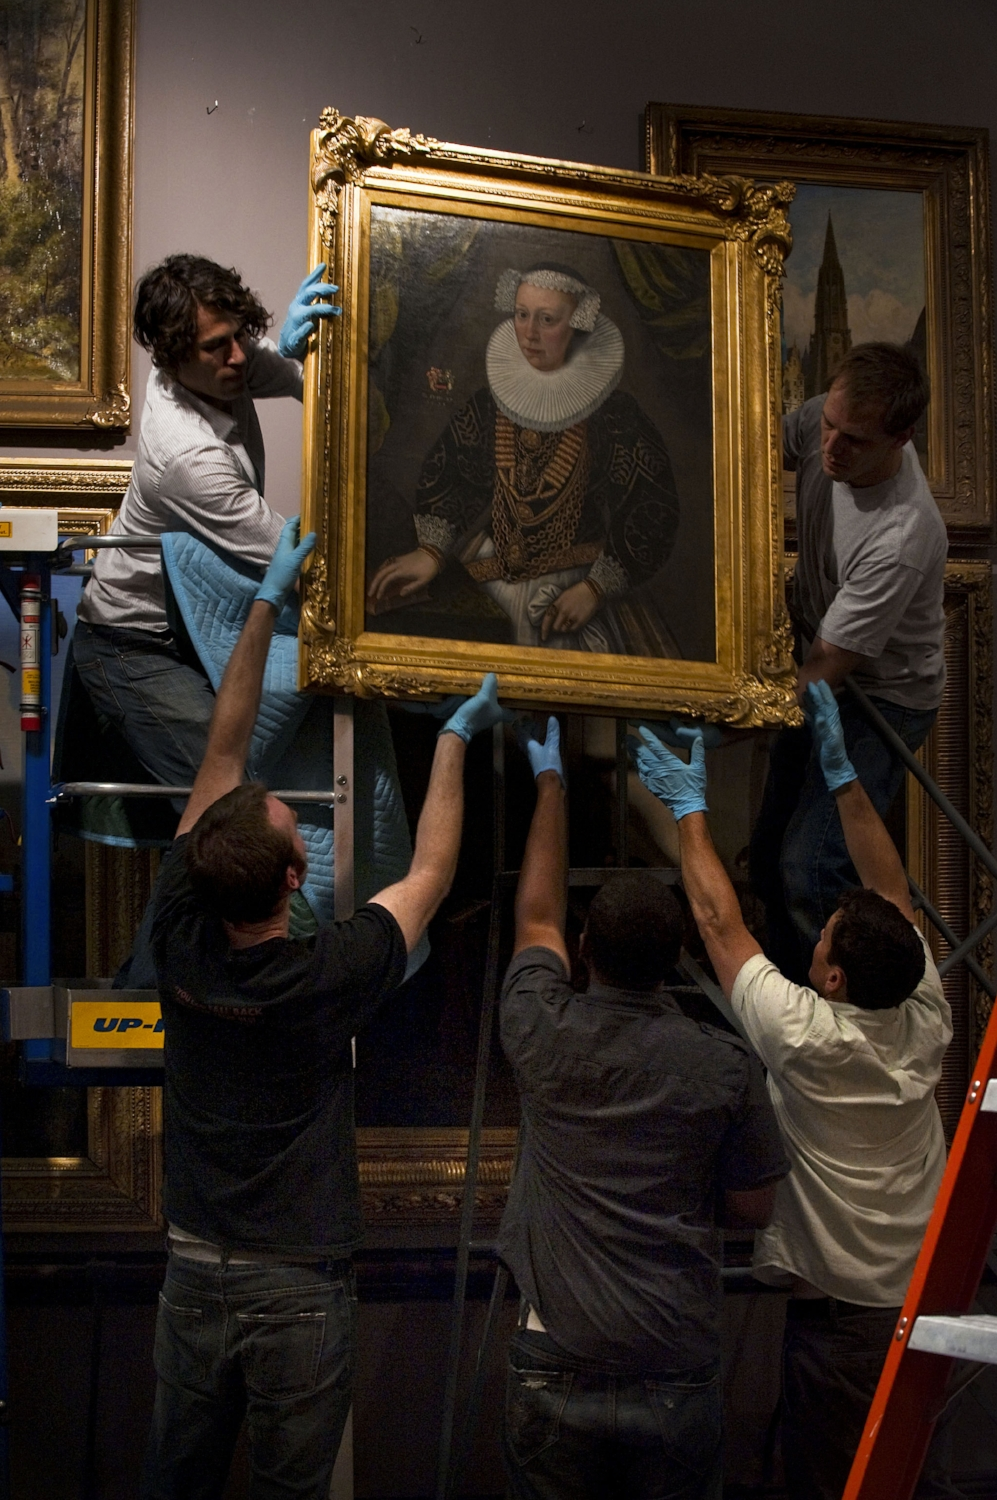 Exhibition technicians remove artwork from the California Gallery at the Crocker Art Museum in Sacramento on Thursday, June 10, 2010.